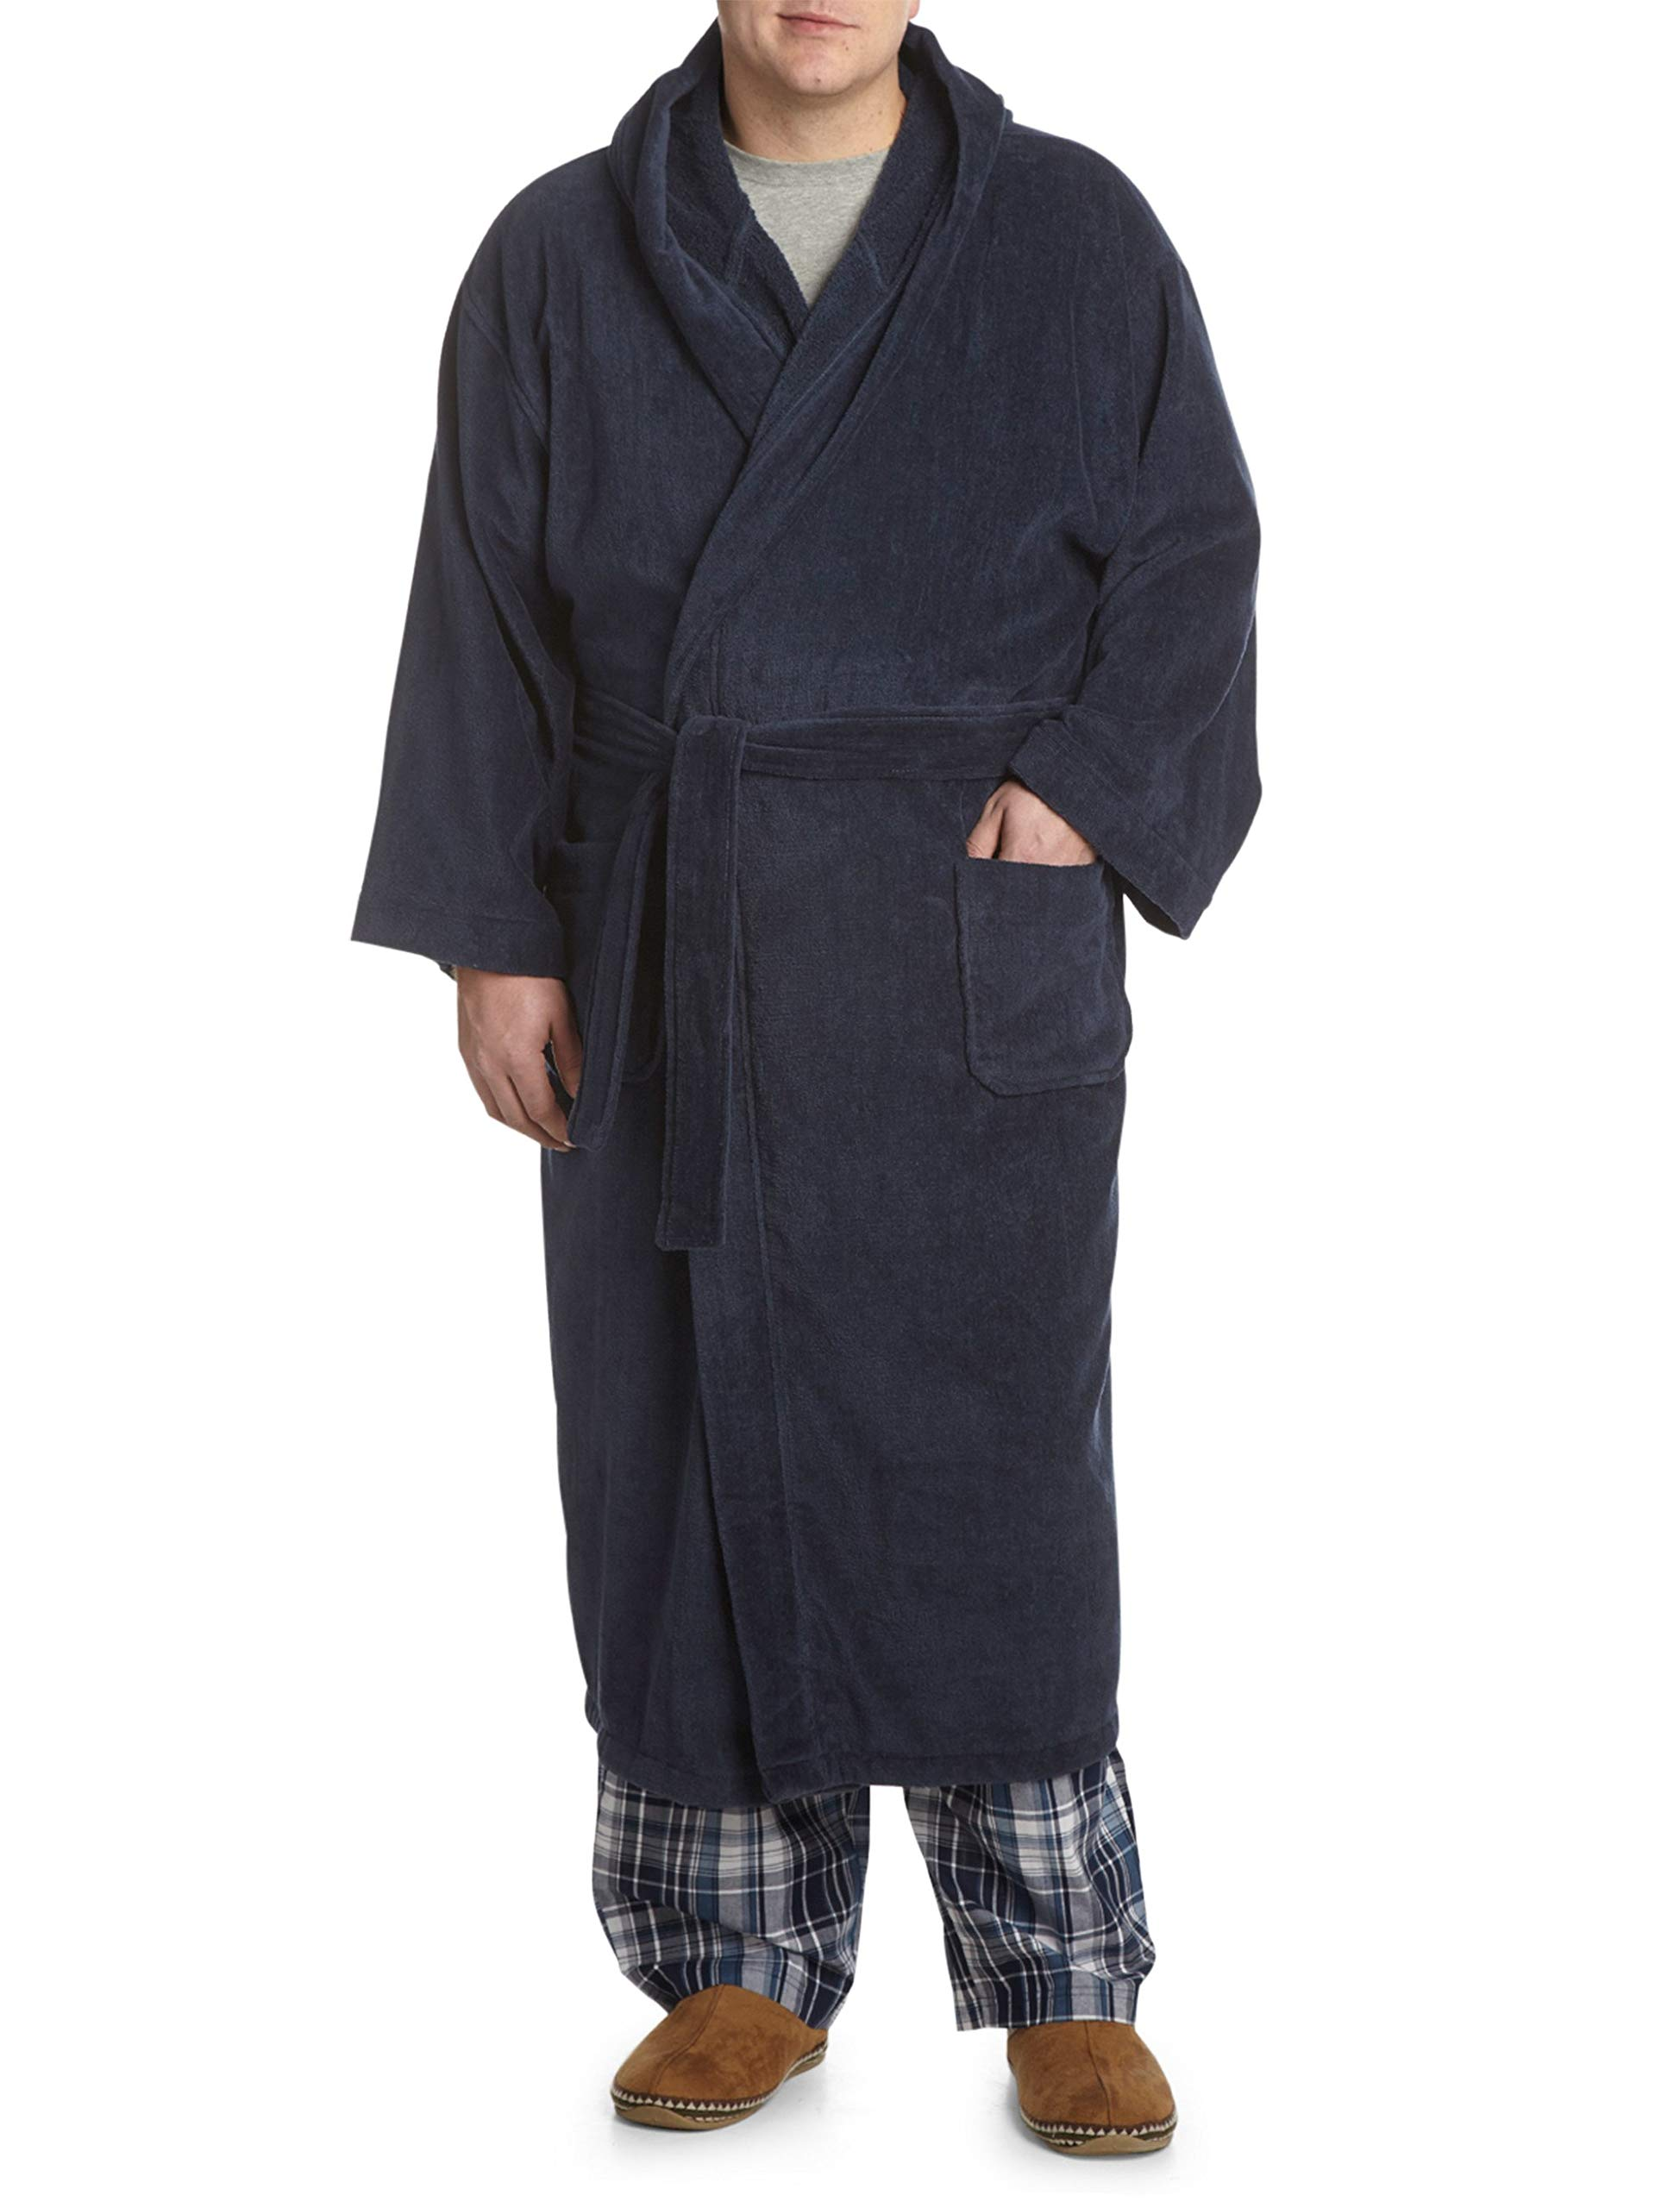 Harbor Bay by DXL Big and Tall Hooded Terry Robe (5X/6X, Navy)